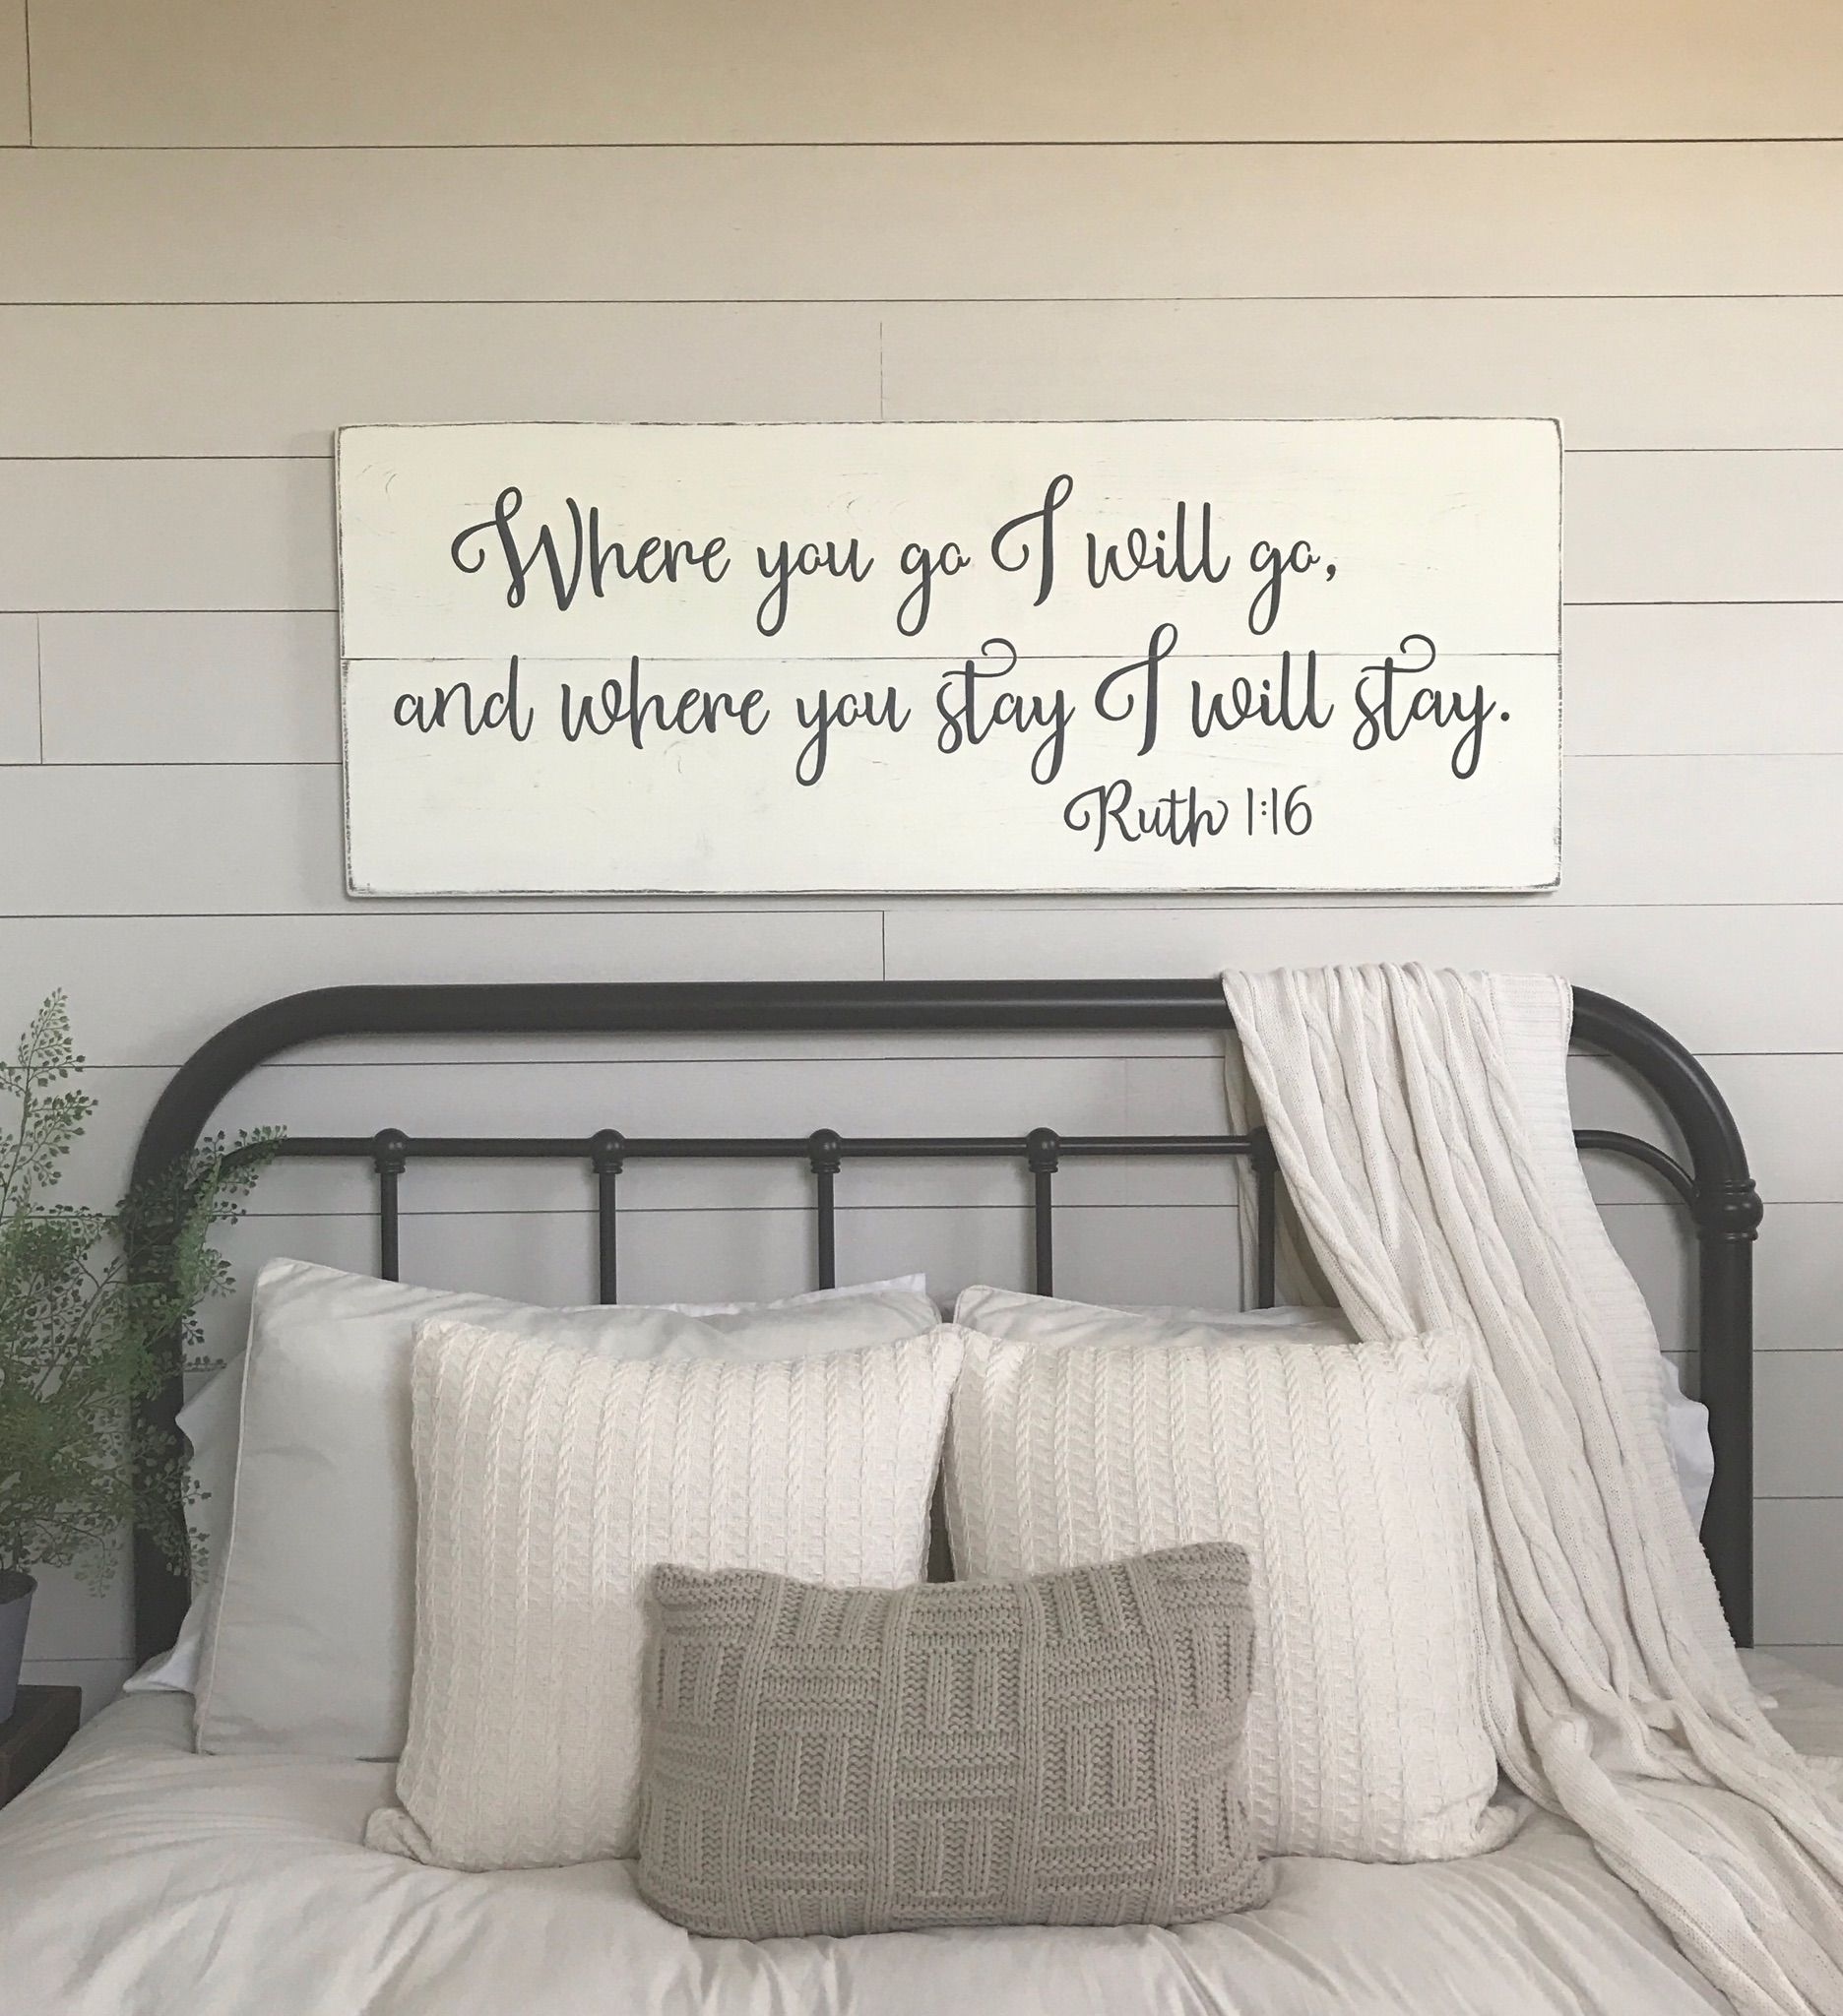 Bedroom Wall Decor Where You Go I Will Go Wood Signs Bedroom